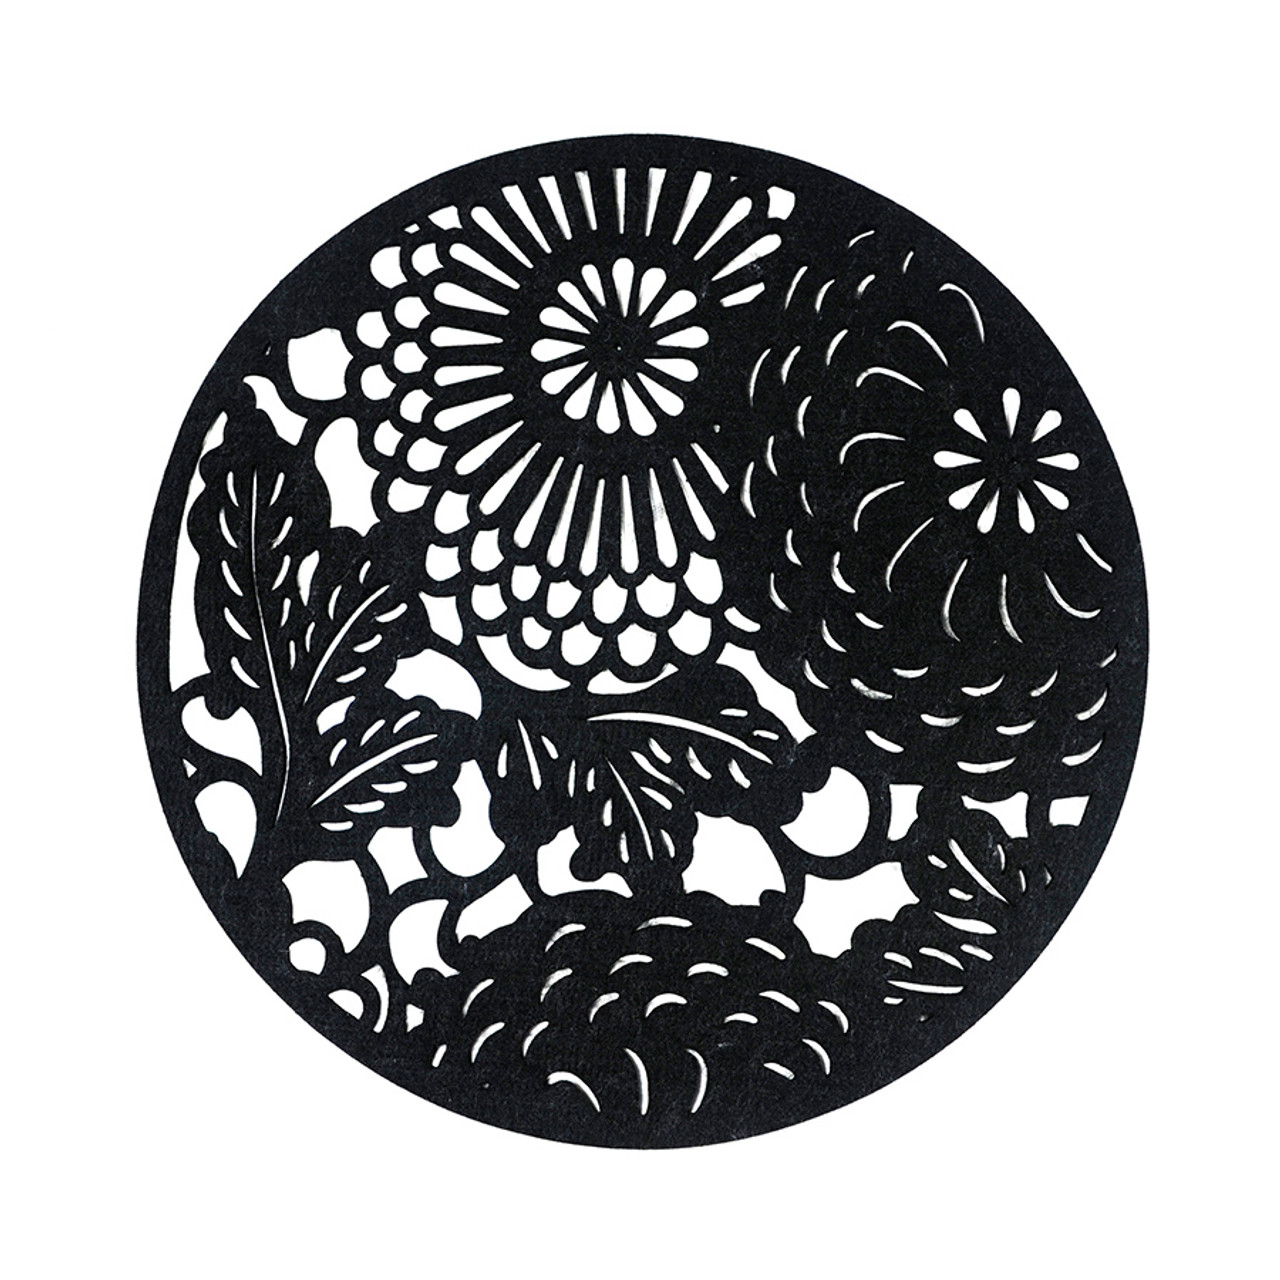 Floral Placemat - Round Black 4 piece set